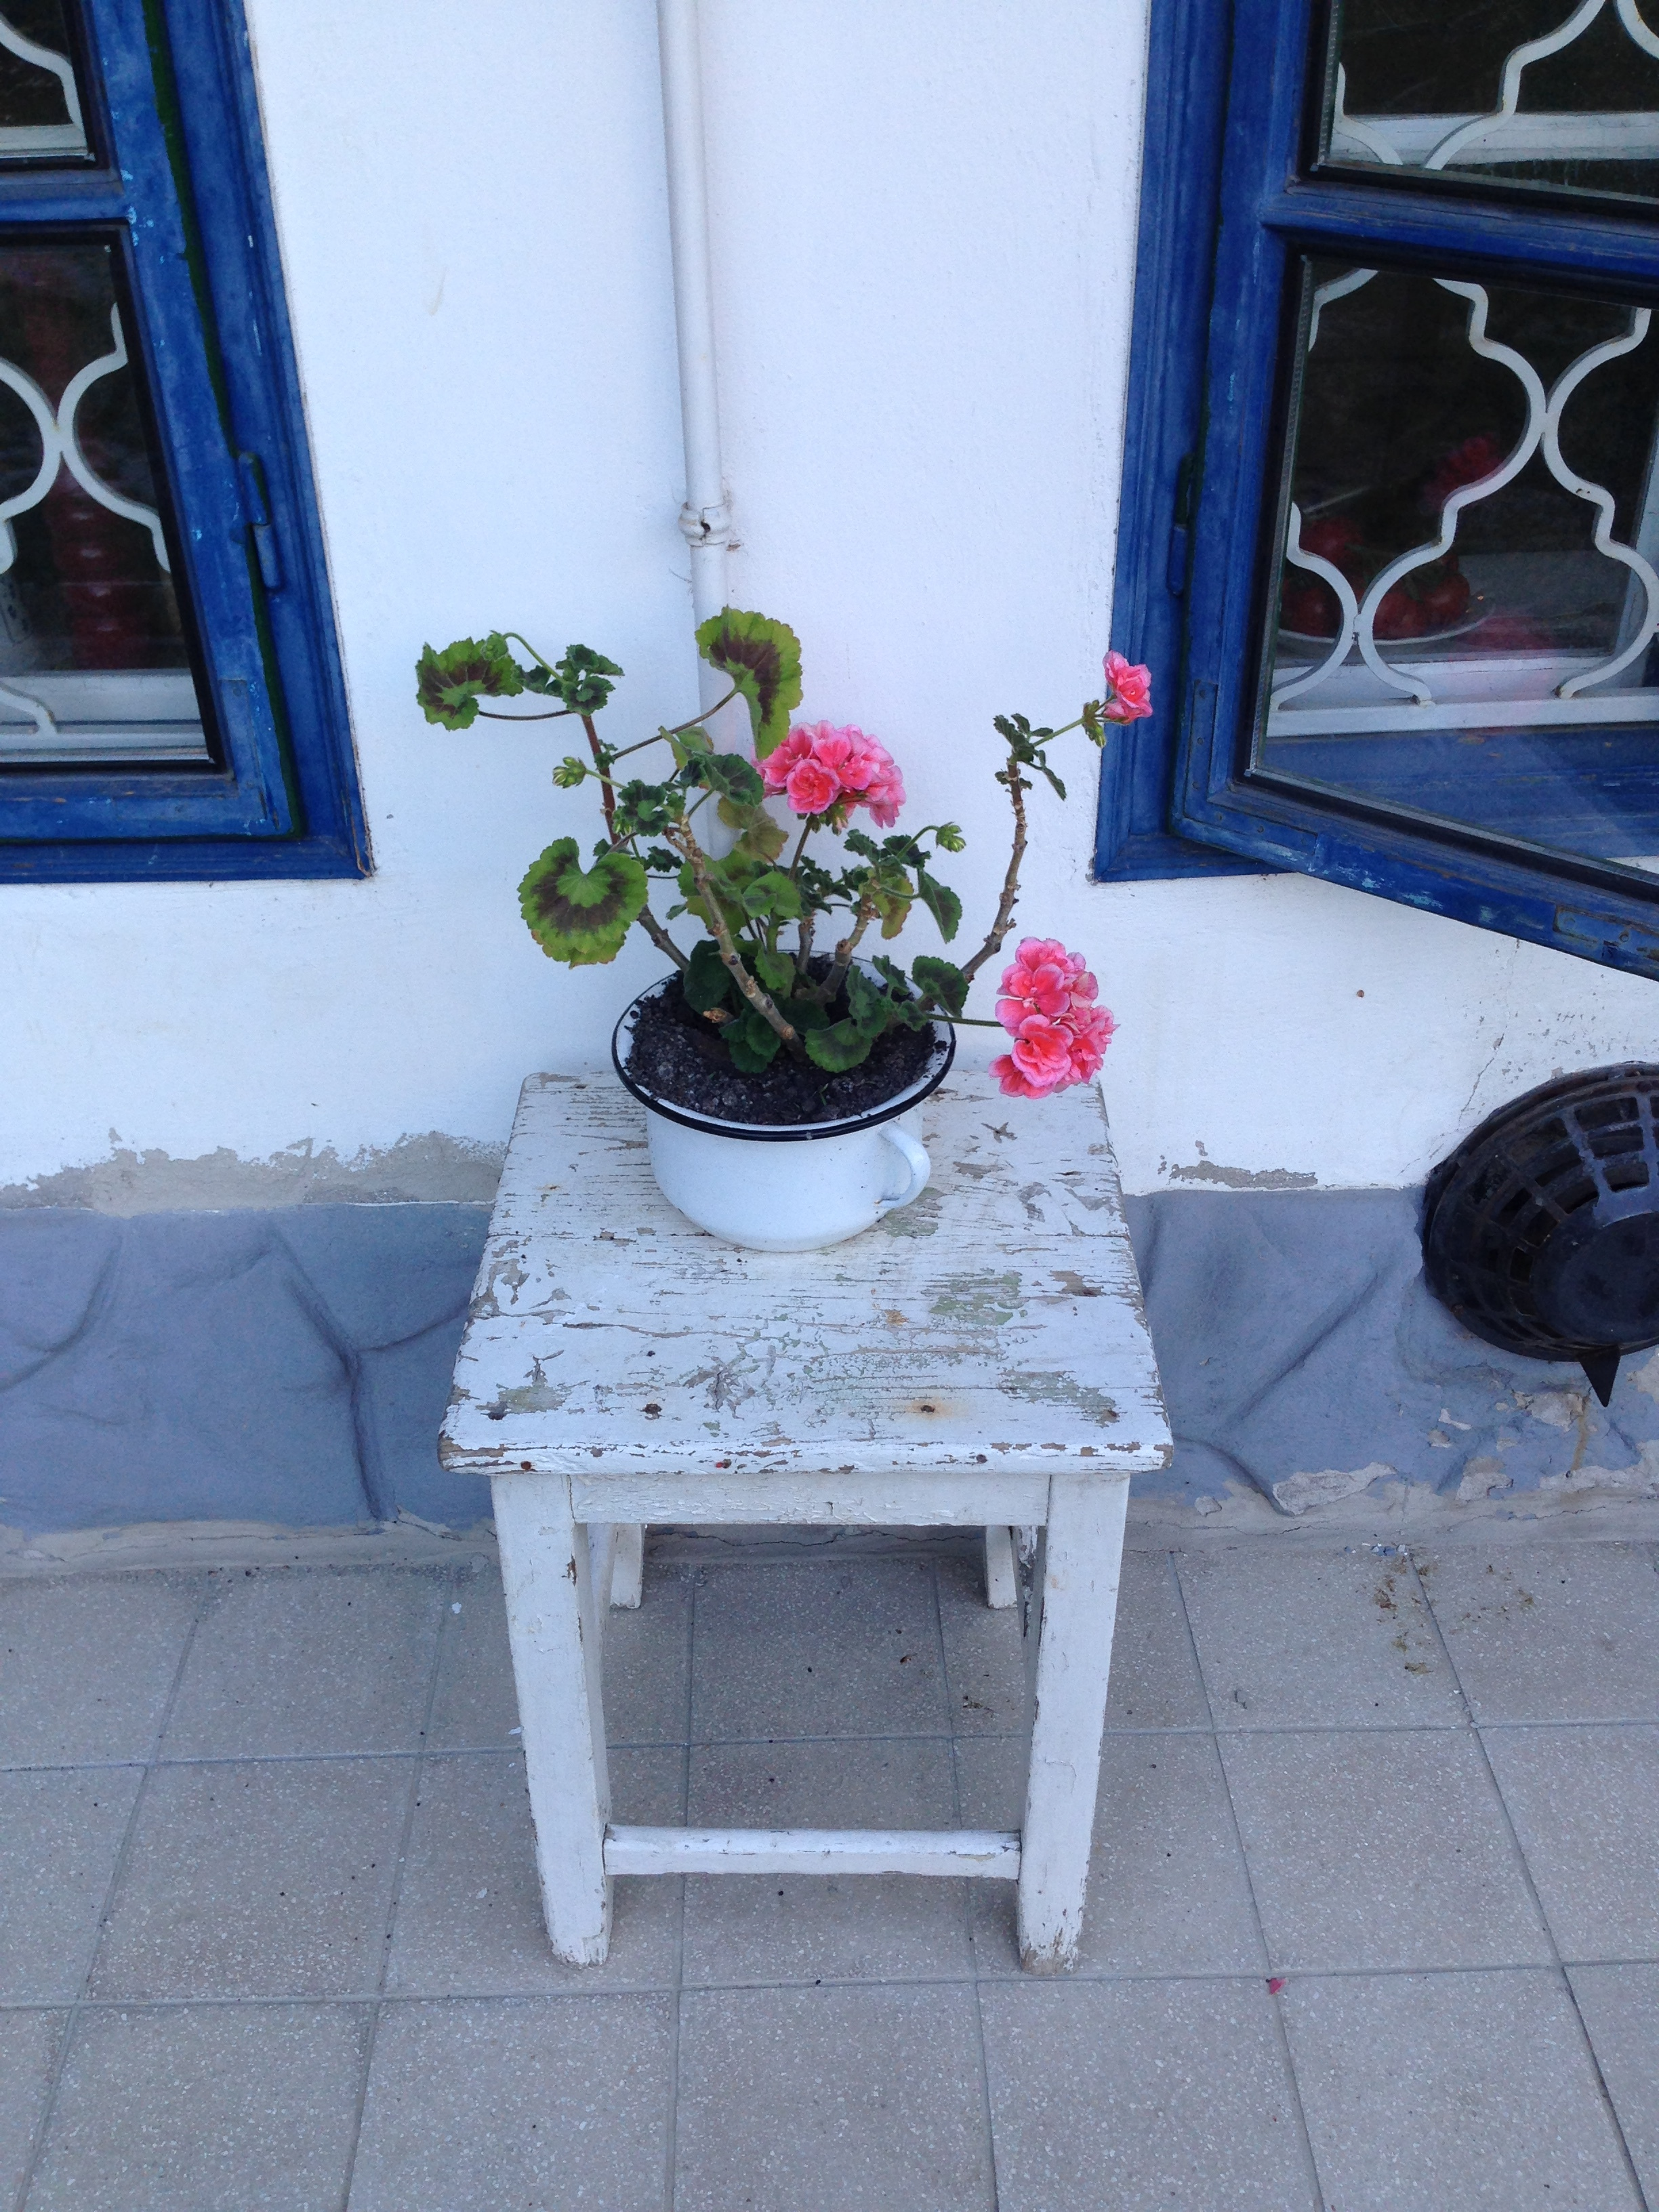 A gorgeous pink geranium in a white enamel pot - just perfect!